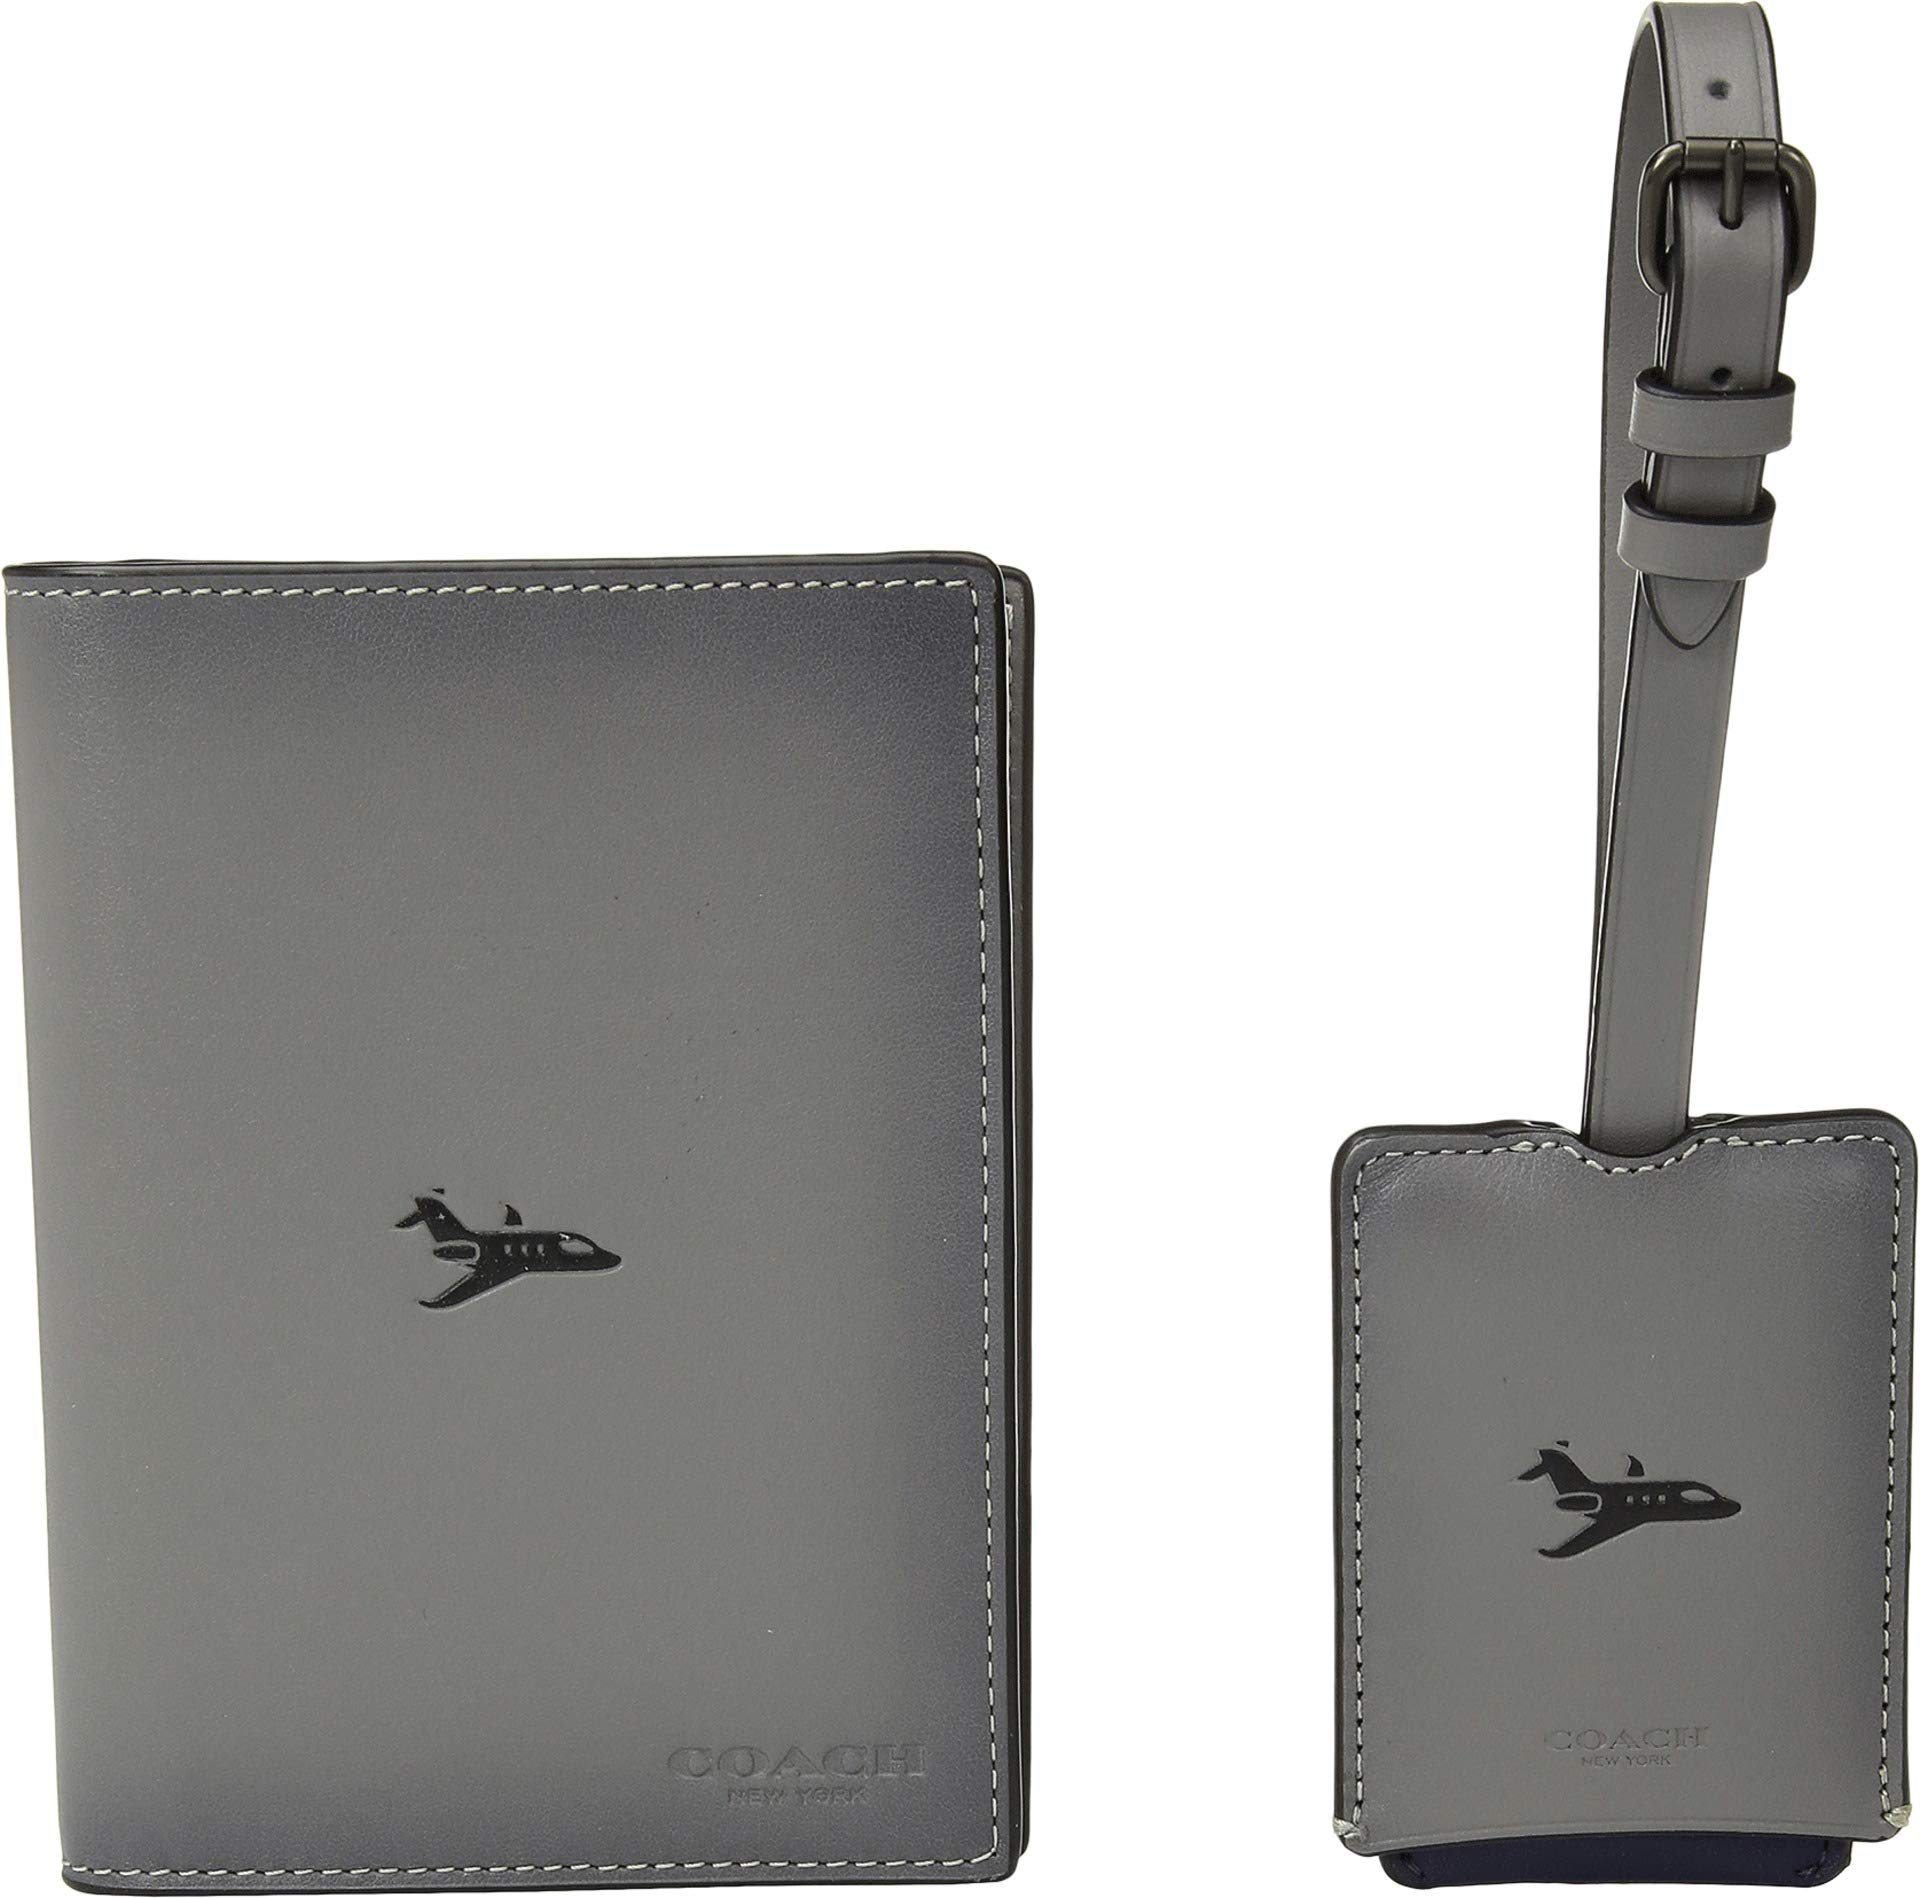 COACH Men's Boxed Passport Case and Luggage Tag Featuring Motif Grey One Size